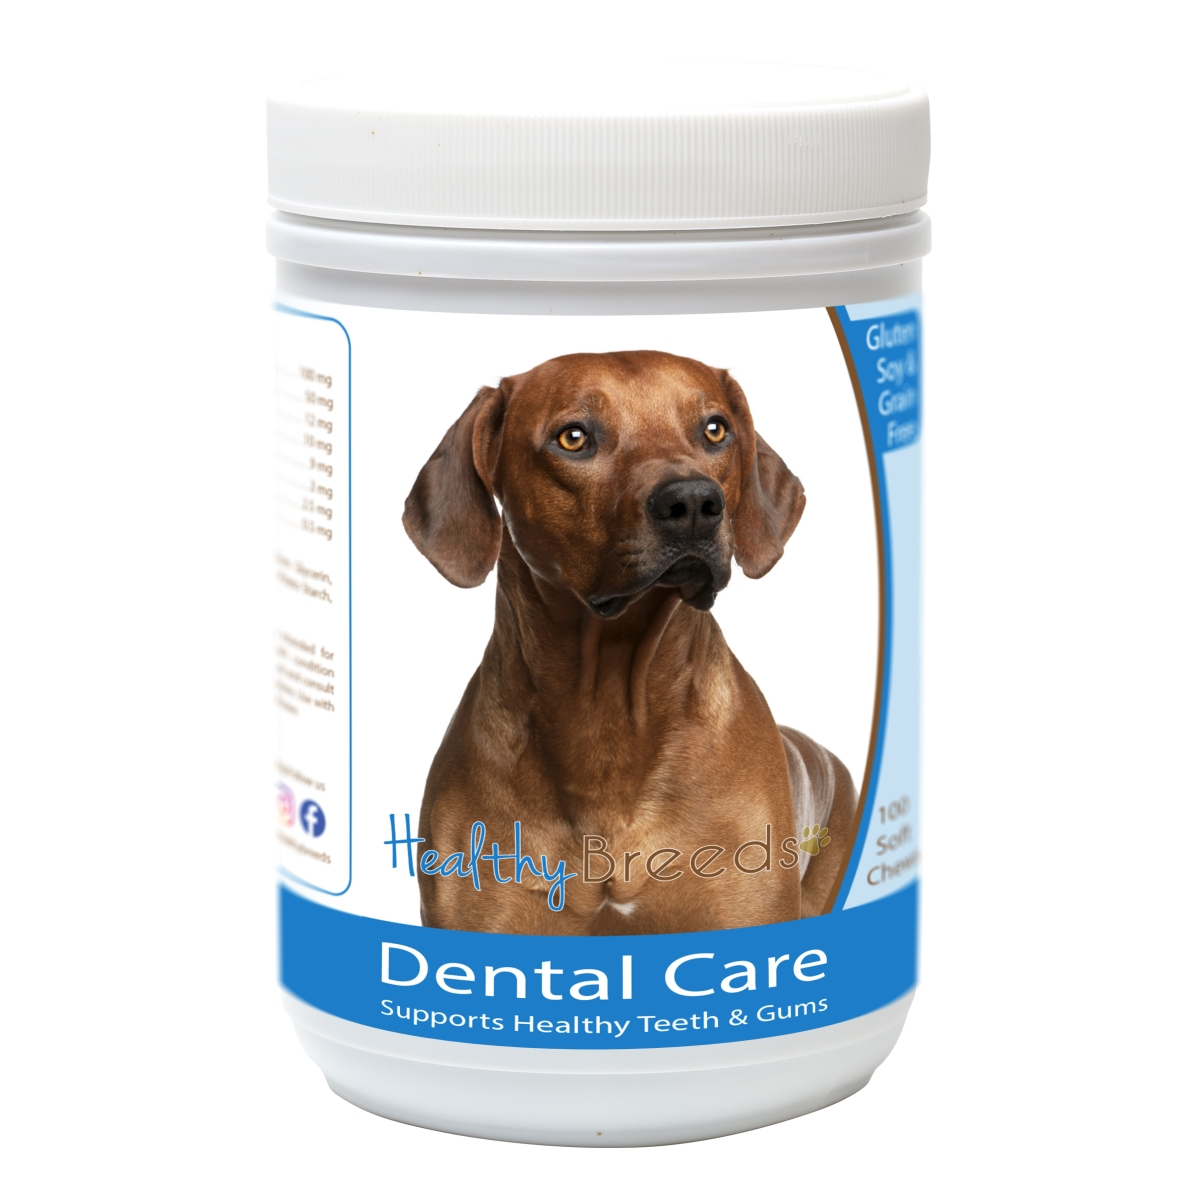 Healthy Breeds 840235163411 Rhodesian Ridgeback Breath Care Soft Chews for Dogs - 60 Count